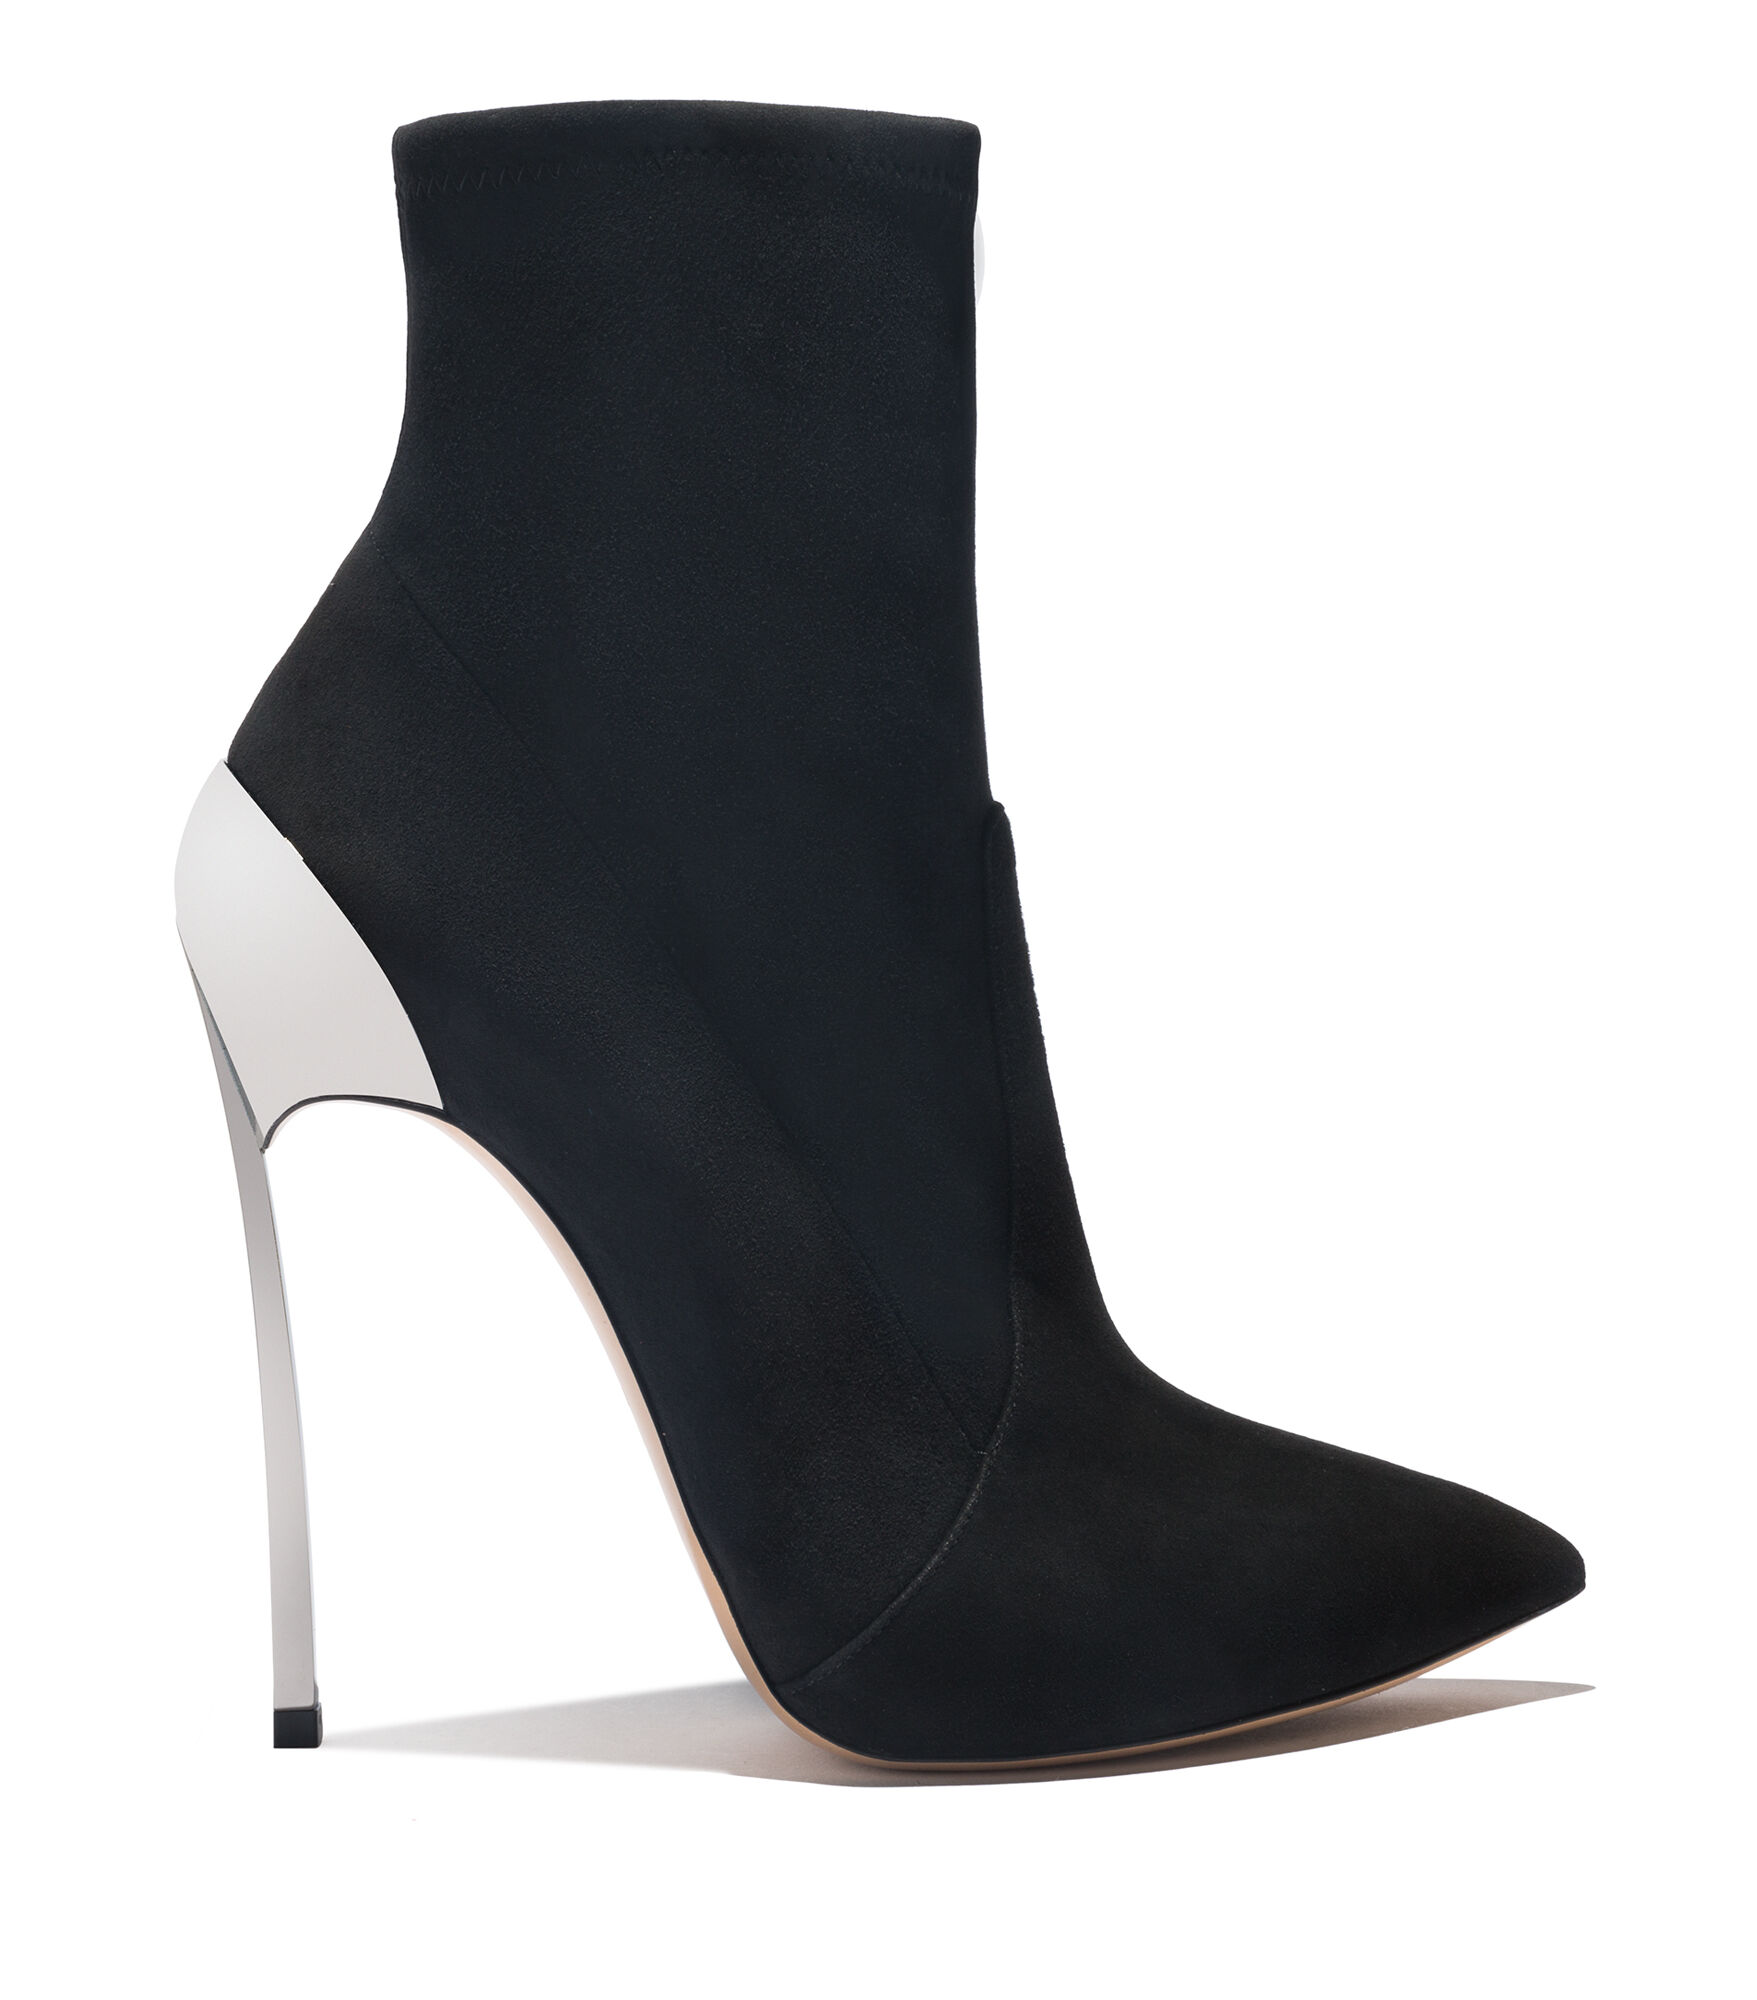 Casadei Ankle Boots - Techno Blade Black Suede